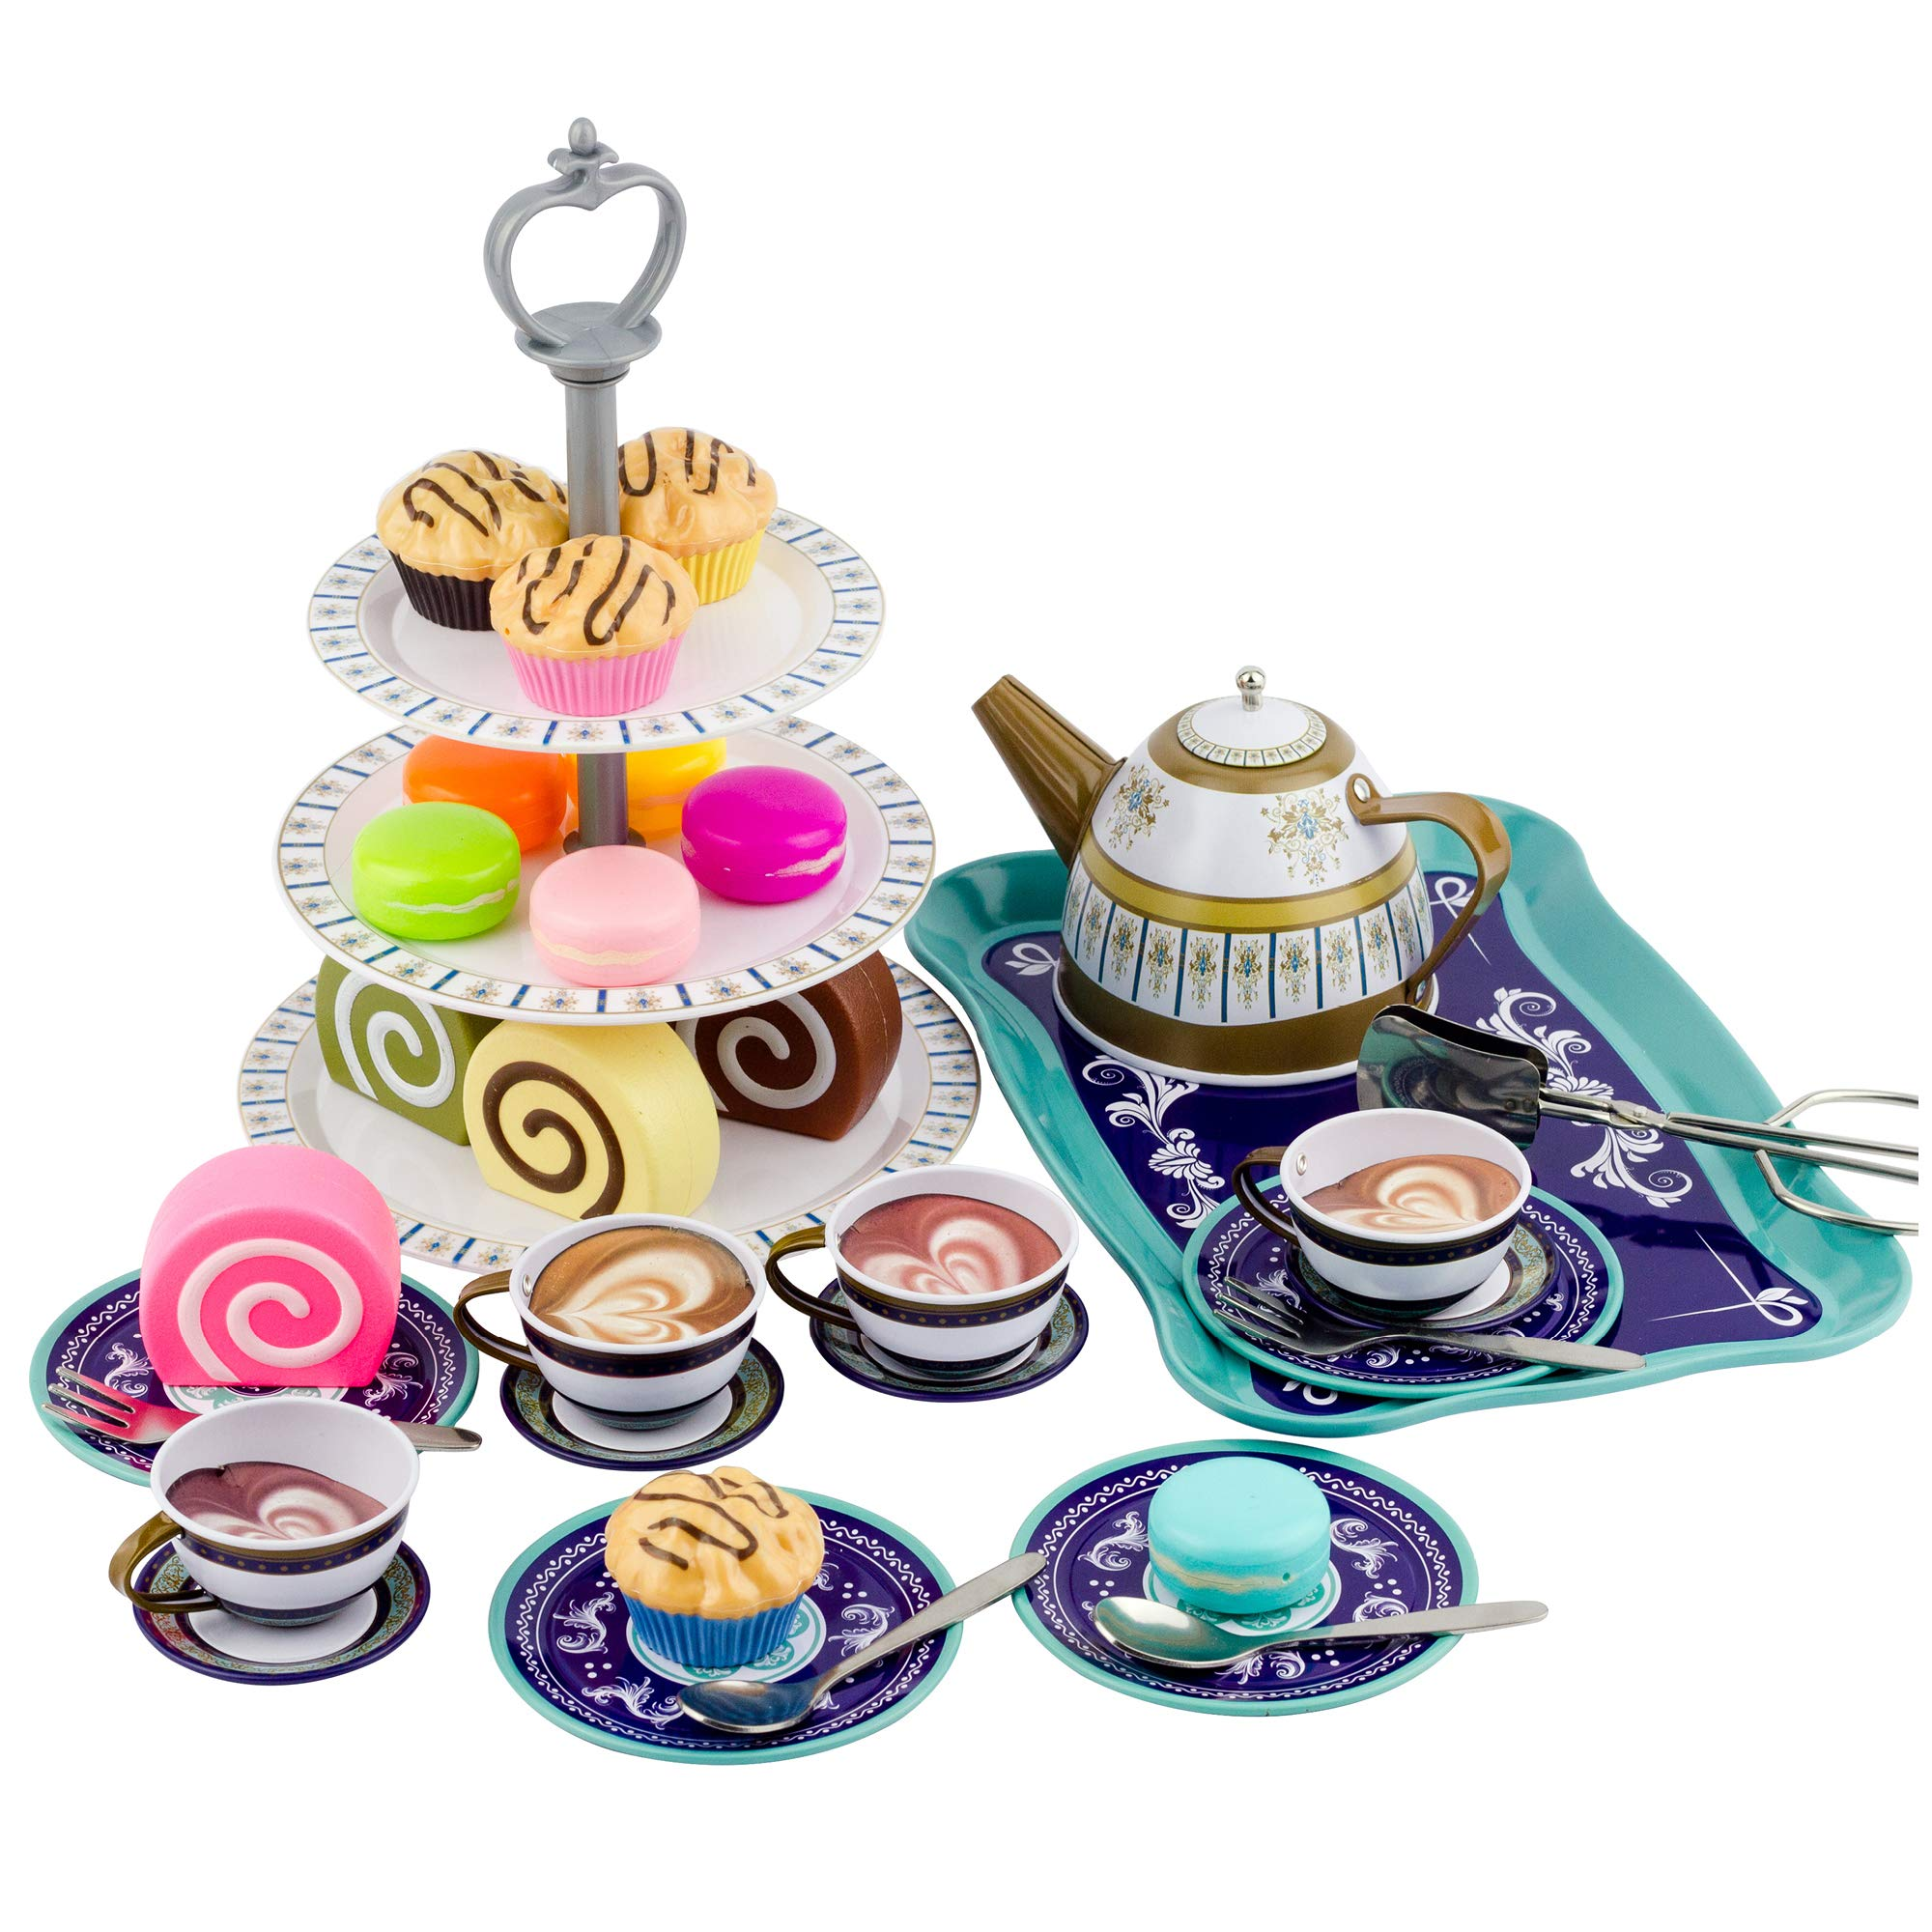 Liberty Imports Deluxe Afternoon Tin Tea Set with Cake Stand and Dessert Play Food - Metalware Playset for Four (39 Pieces) by Liberty Imports